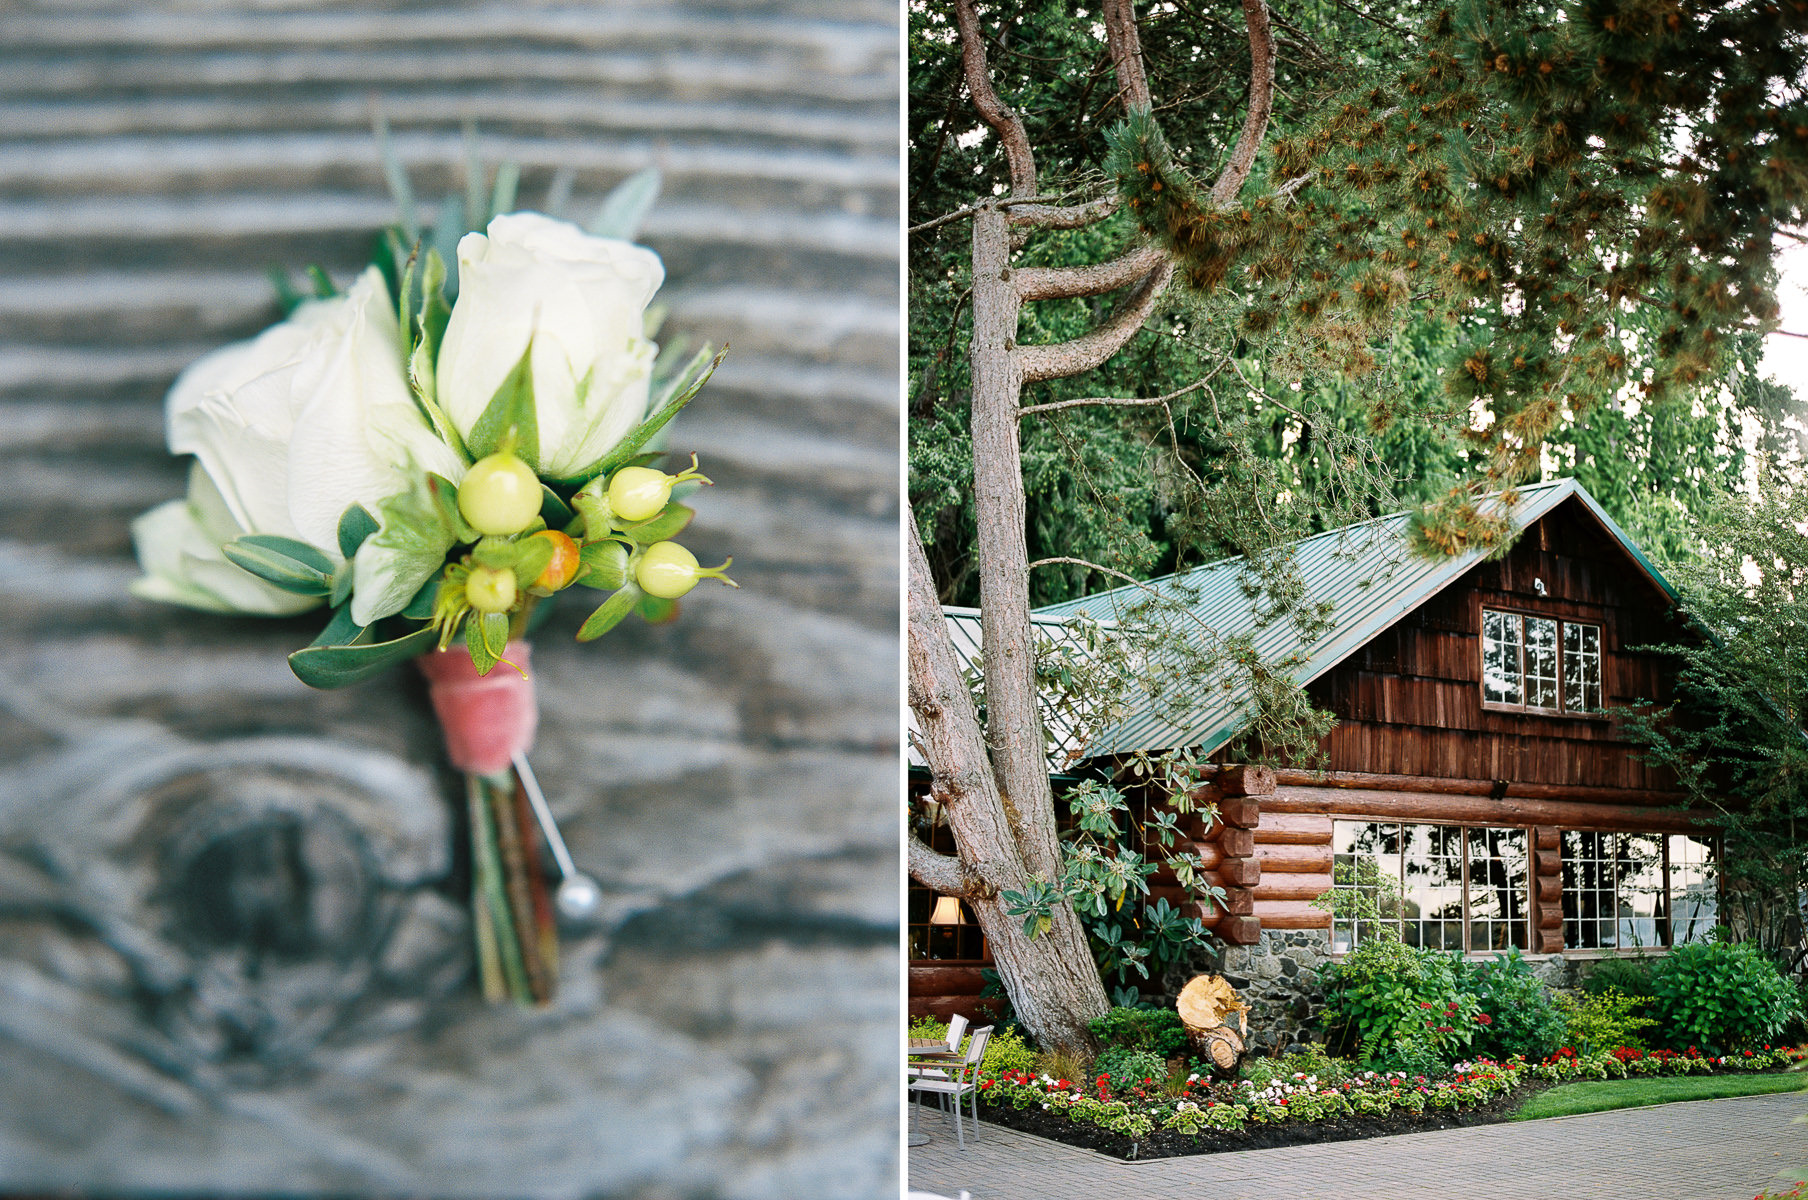 Elegant wedding details at Kiana Lodge captured by top Seattle Wedding Photographer Anna Peters